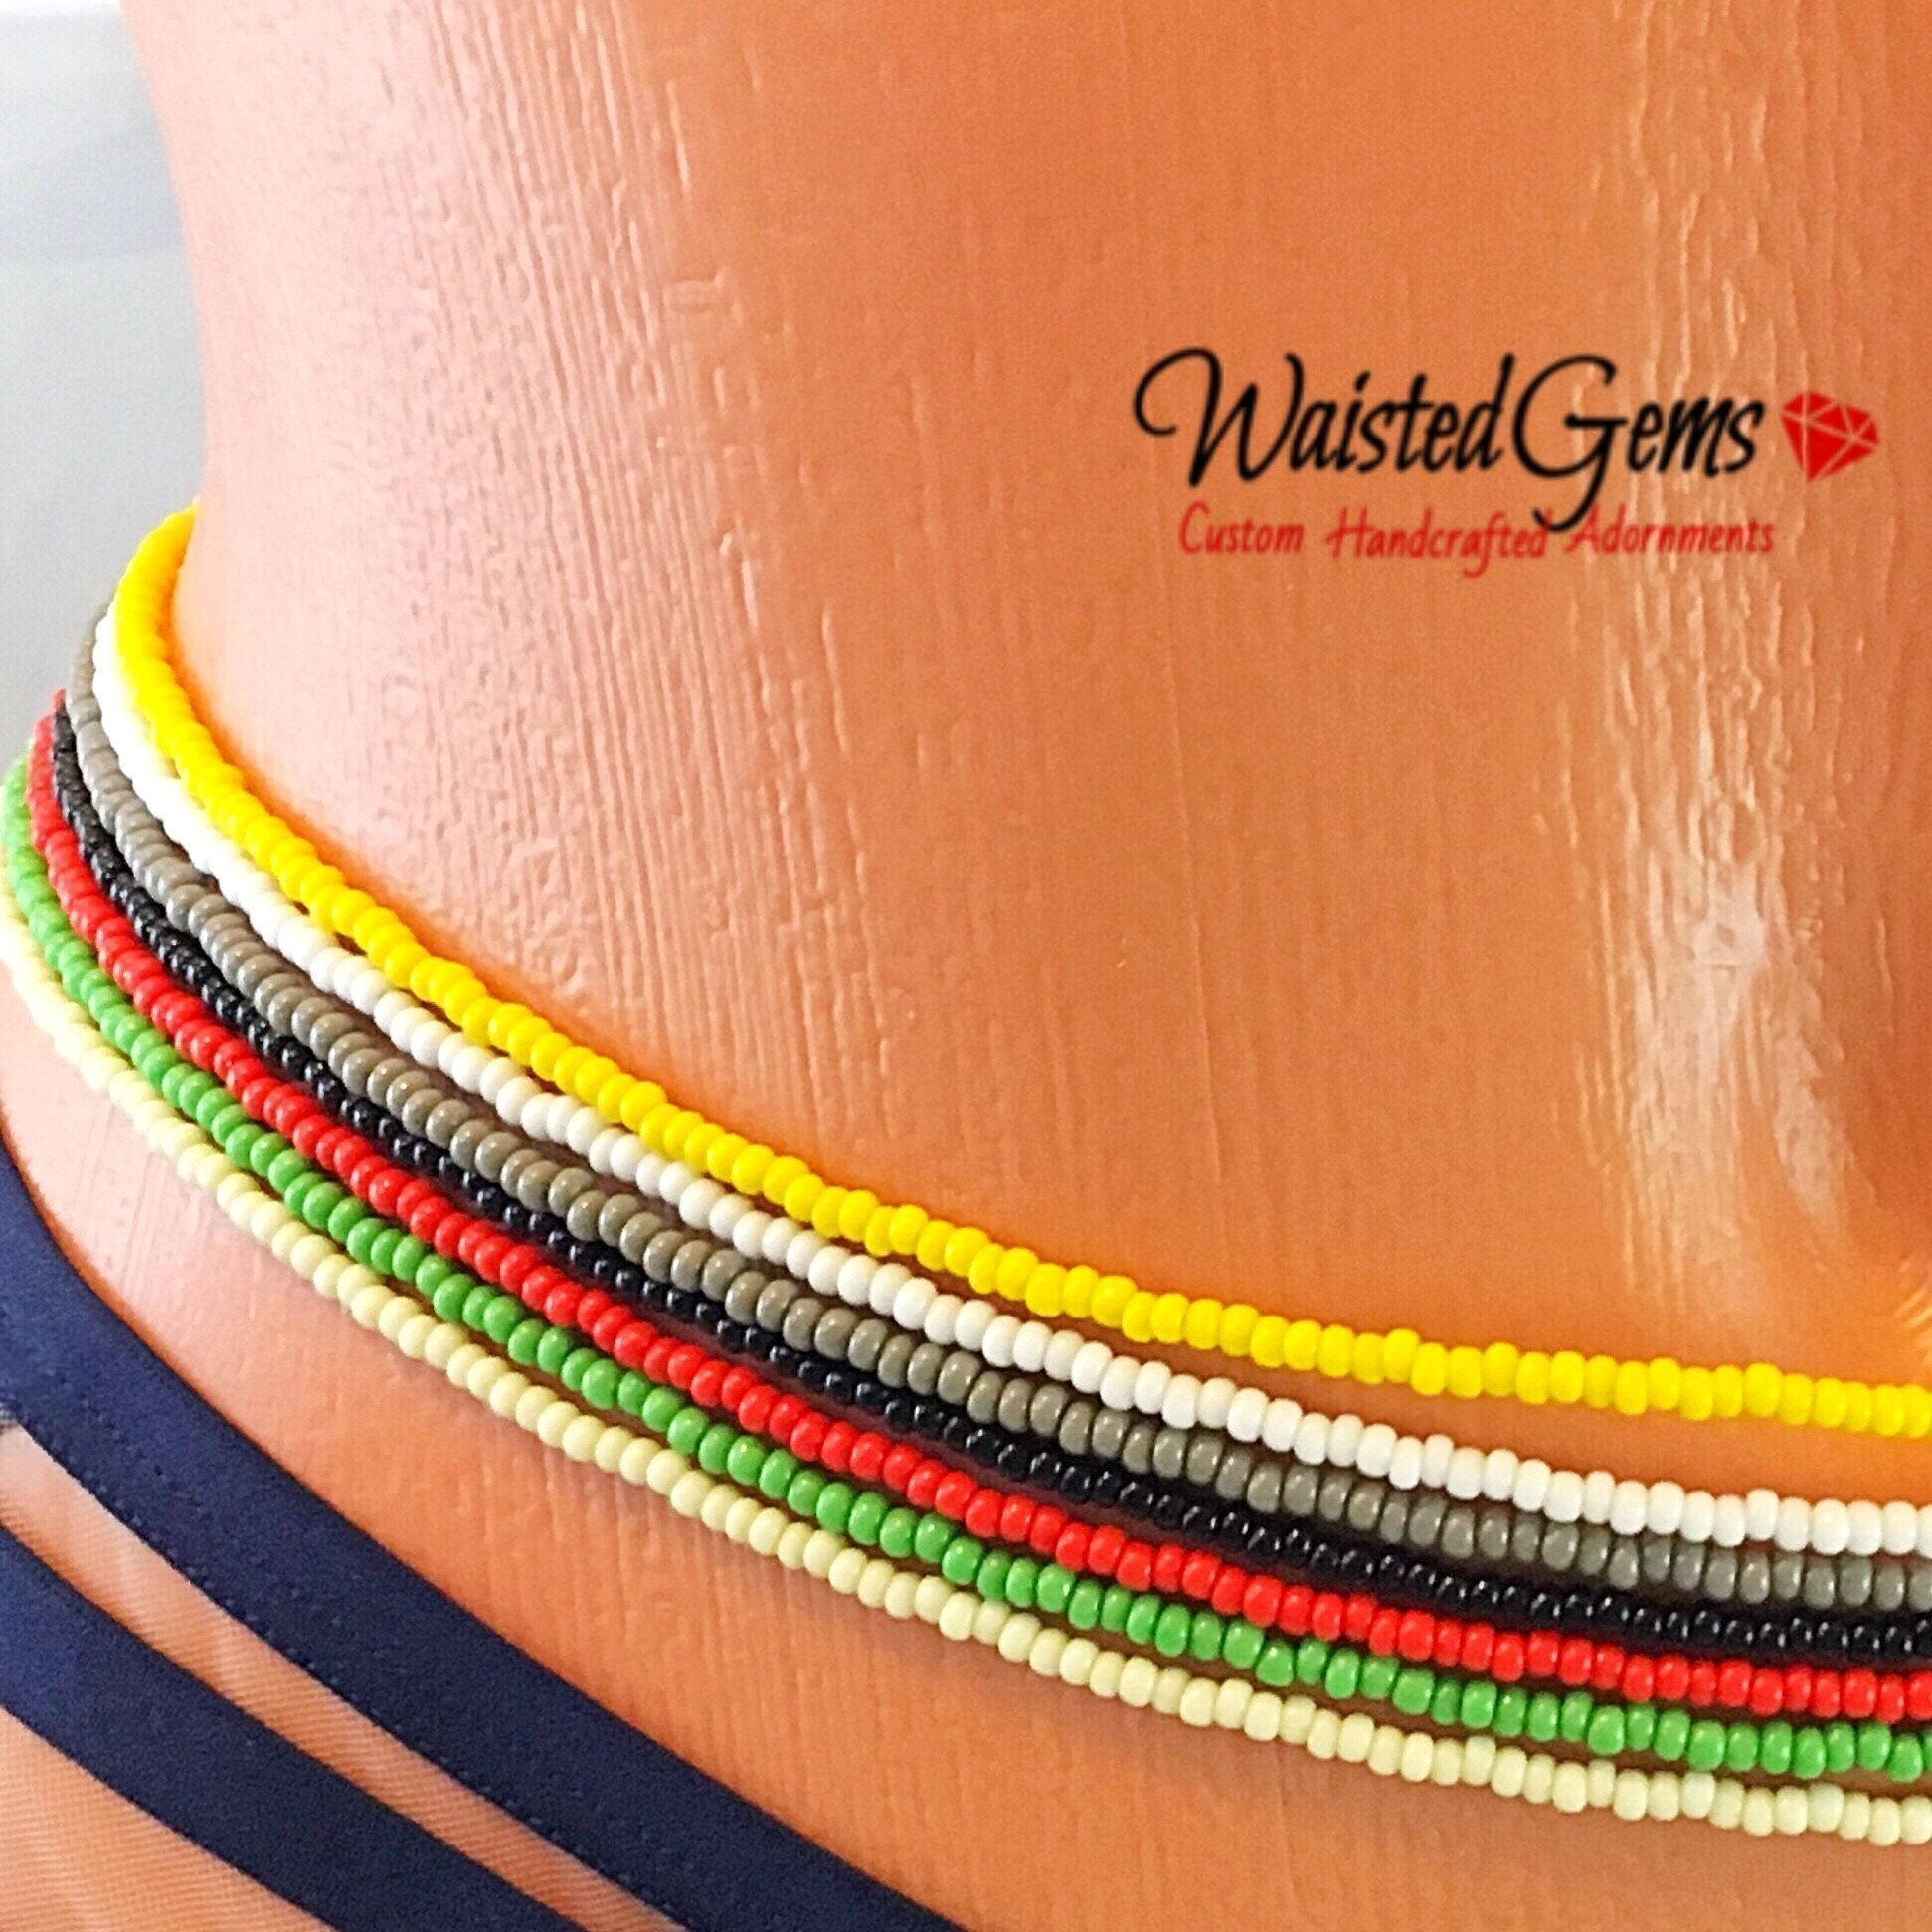 Color Choice Single Strand Waist Beads, Waistbeads, African Waist Beads, Bikini Set, belly chain, Summer Jewelry, Beach Wear, Plus Size, crop tops, Belly Button Ring with Chain, Best Selling Item